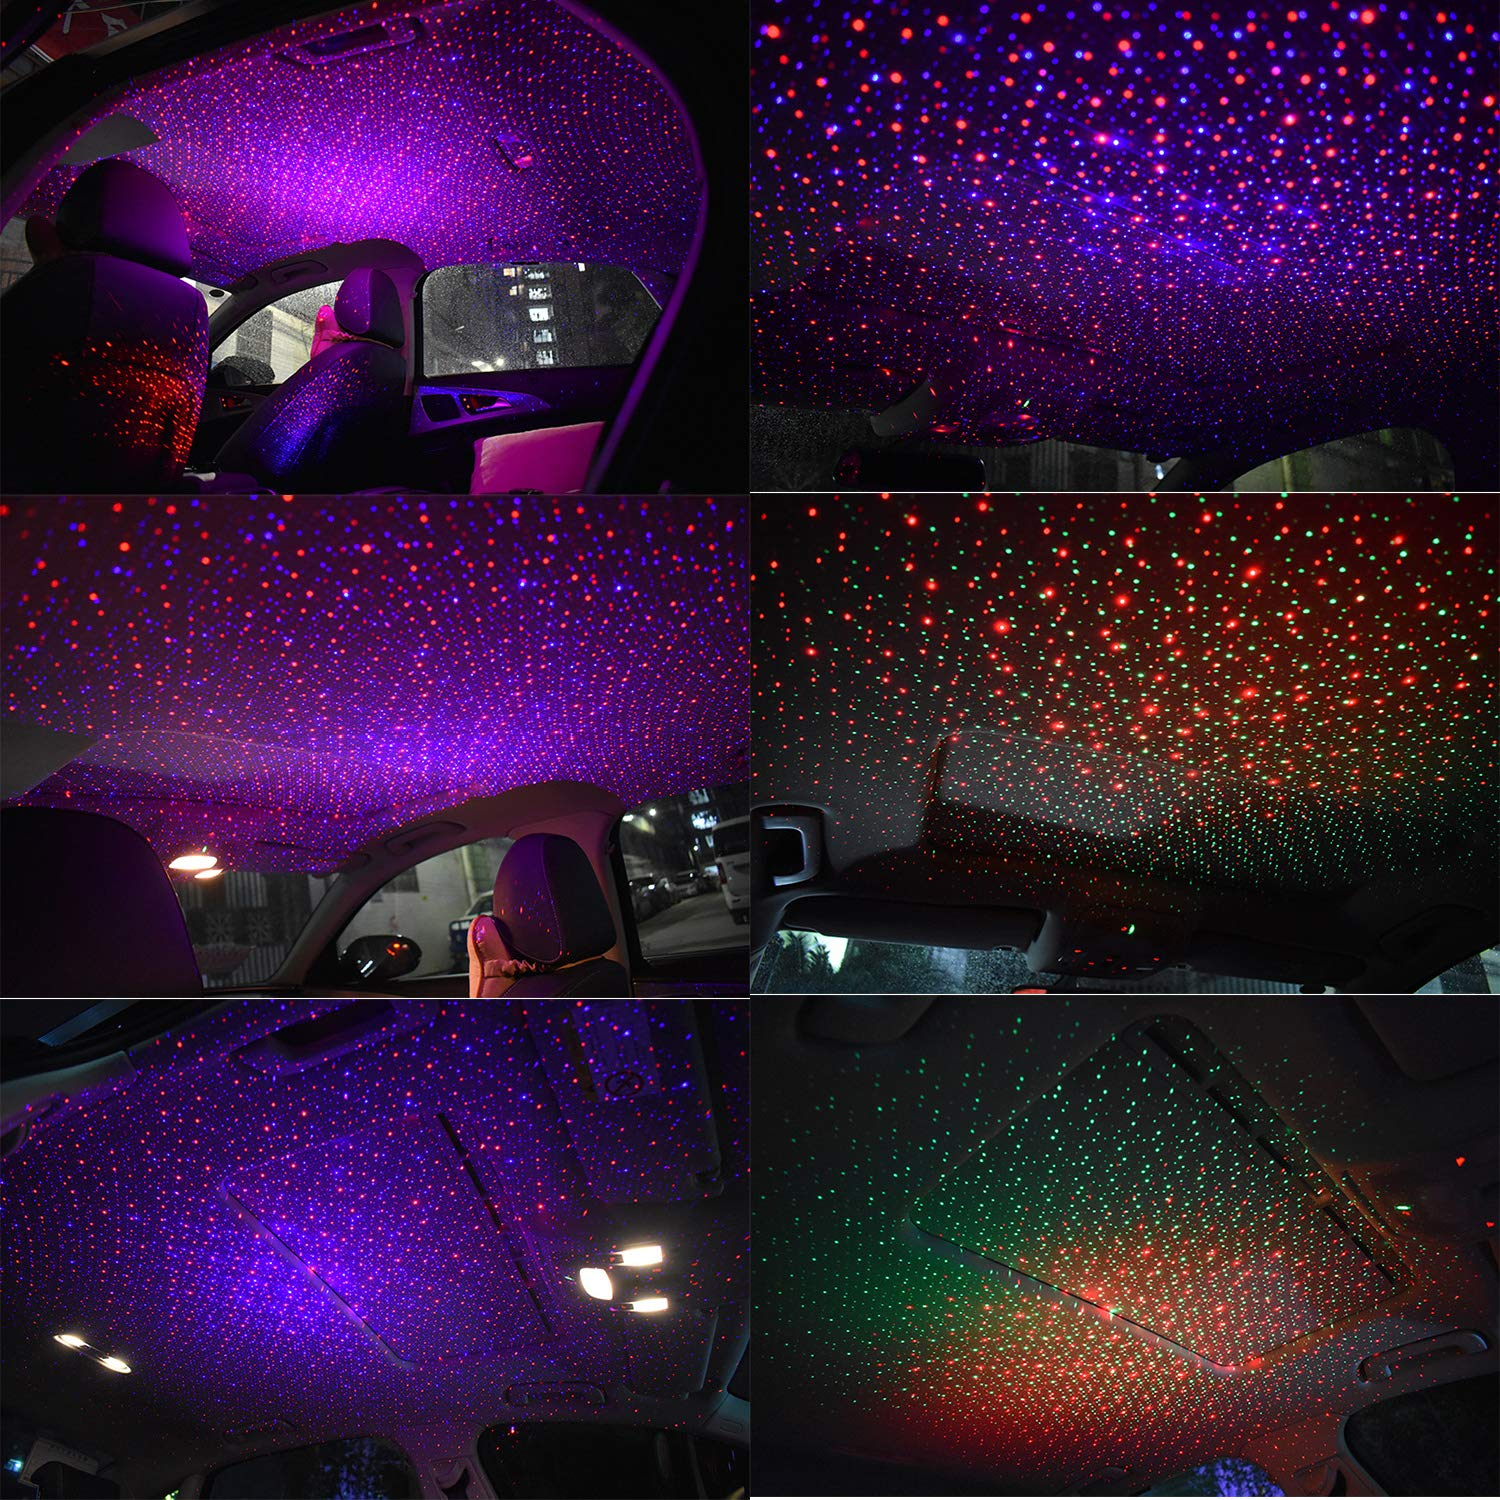 FOLCONROAD Car Roof Star Night Lights Projector Auto Universal Led Ceiling Decoration Light Interior Atmosphere Lamp Replacement for Fiber Optic Light Color(Red and Blue Sky, 1 Pack)